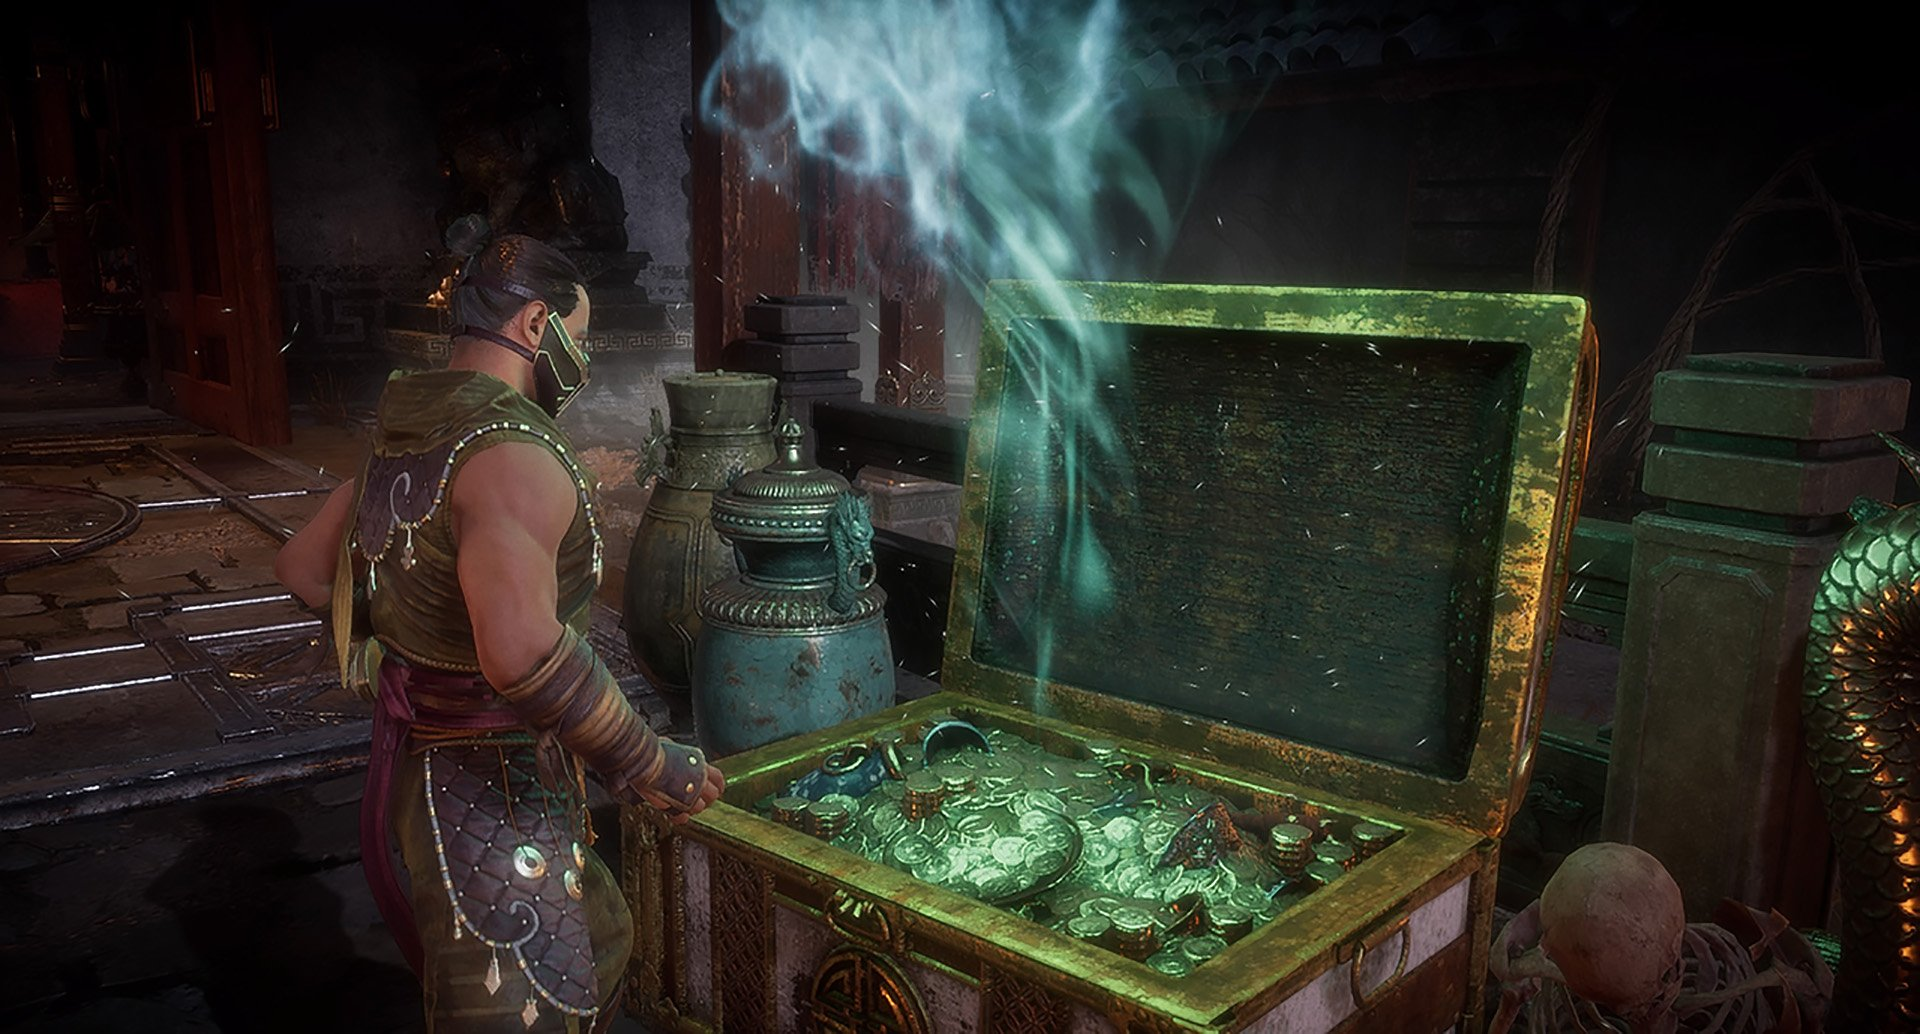 How to open flaming chests in the Mortal Kombat 11 Krypt | Shacknews